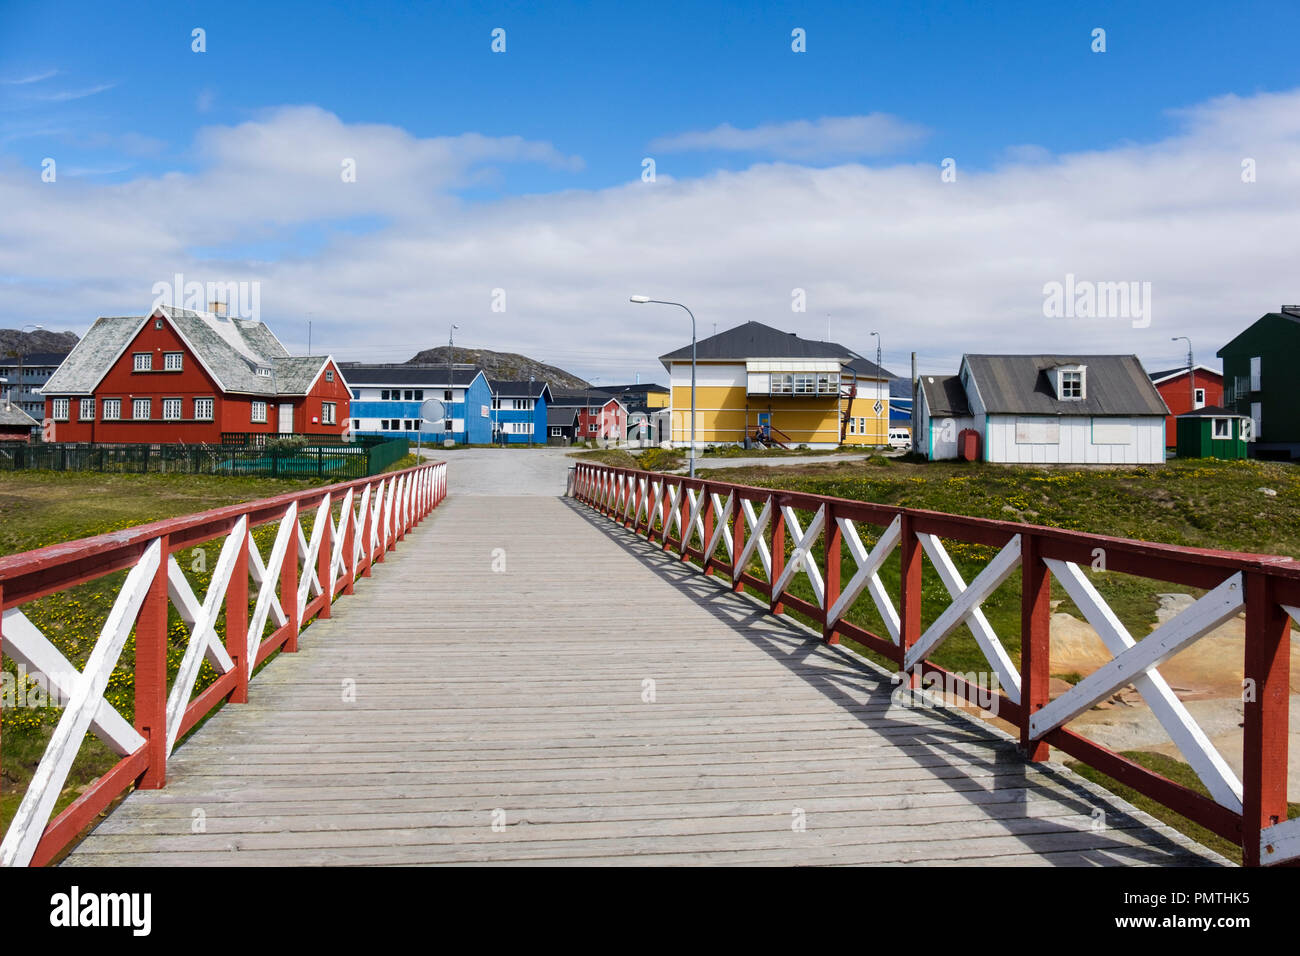 Footbridge and traditional wooden buildings in small town of Paamiut (Frederikshåb), Sermersooq, Greenland Stock Photo